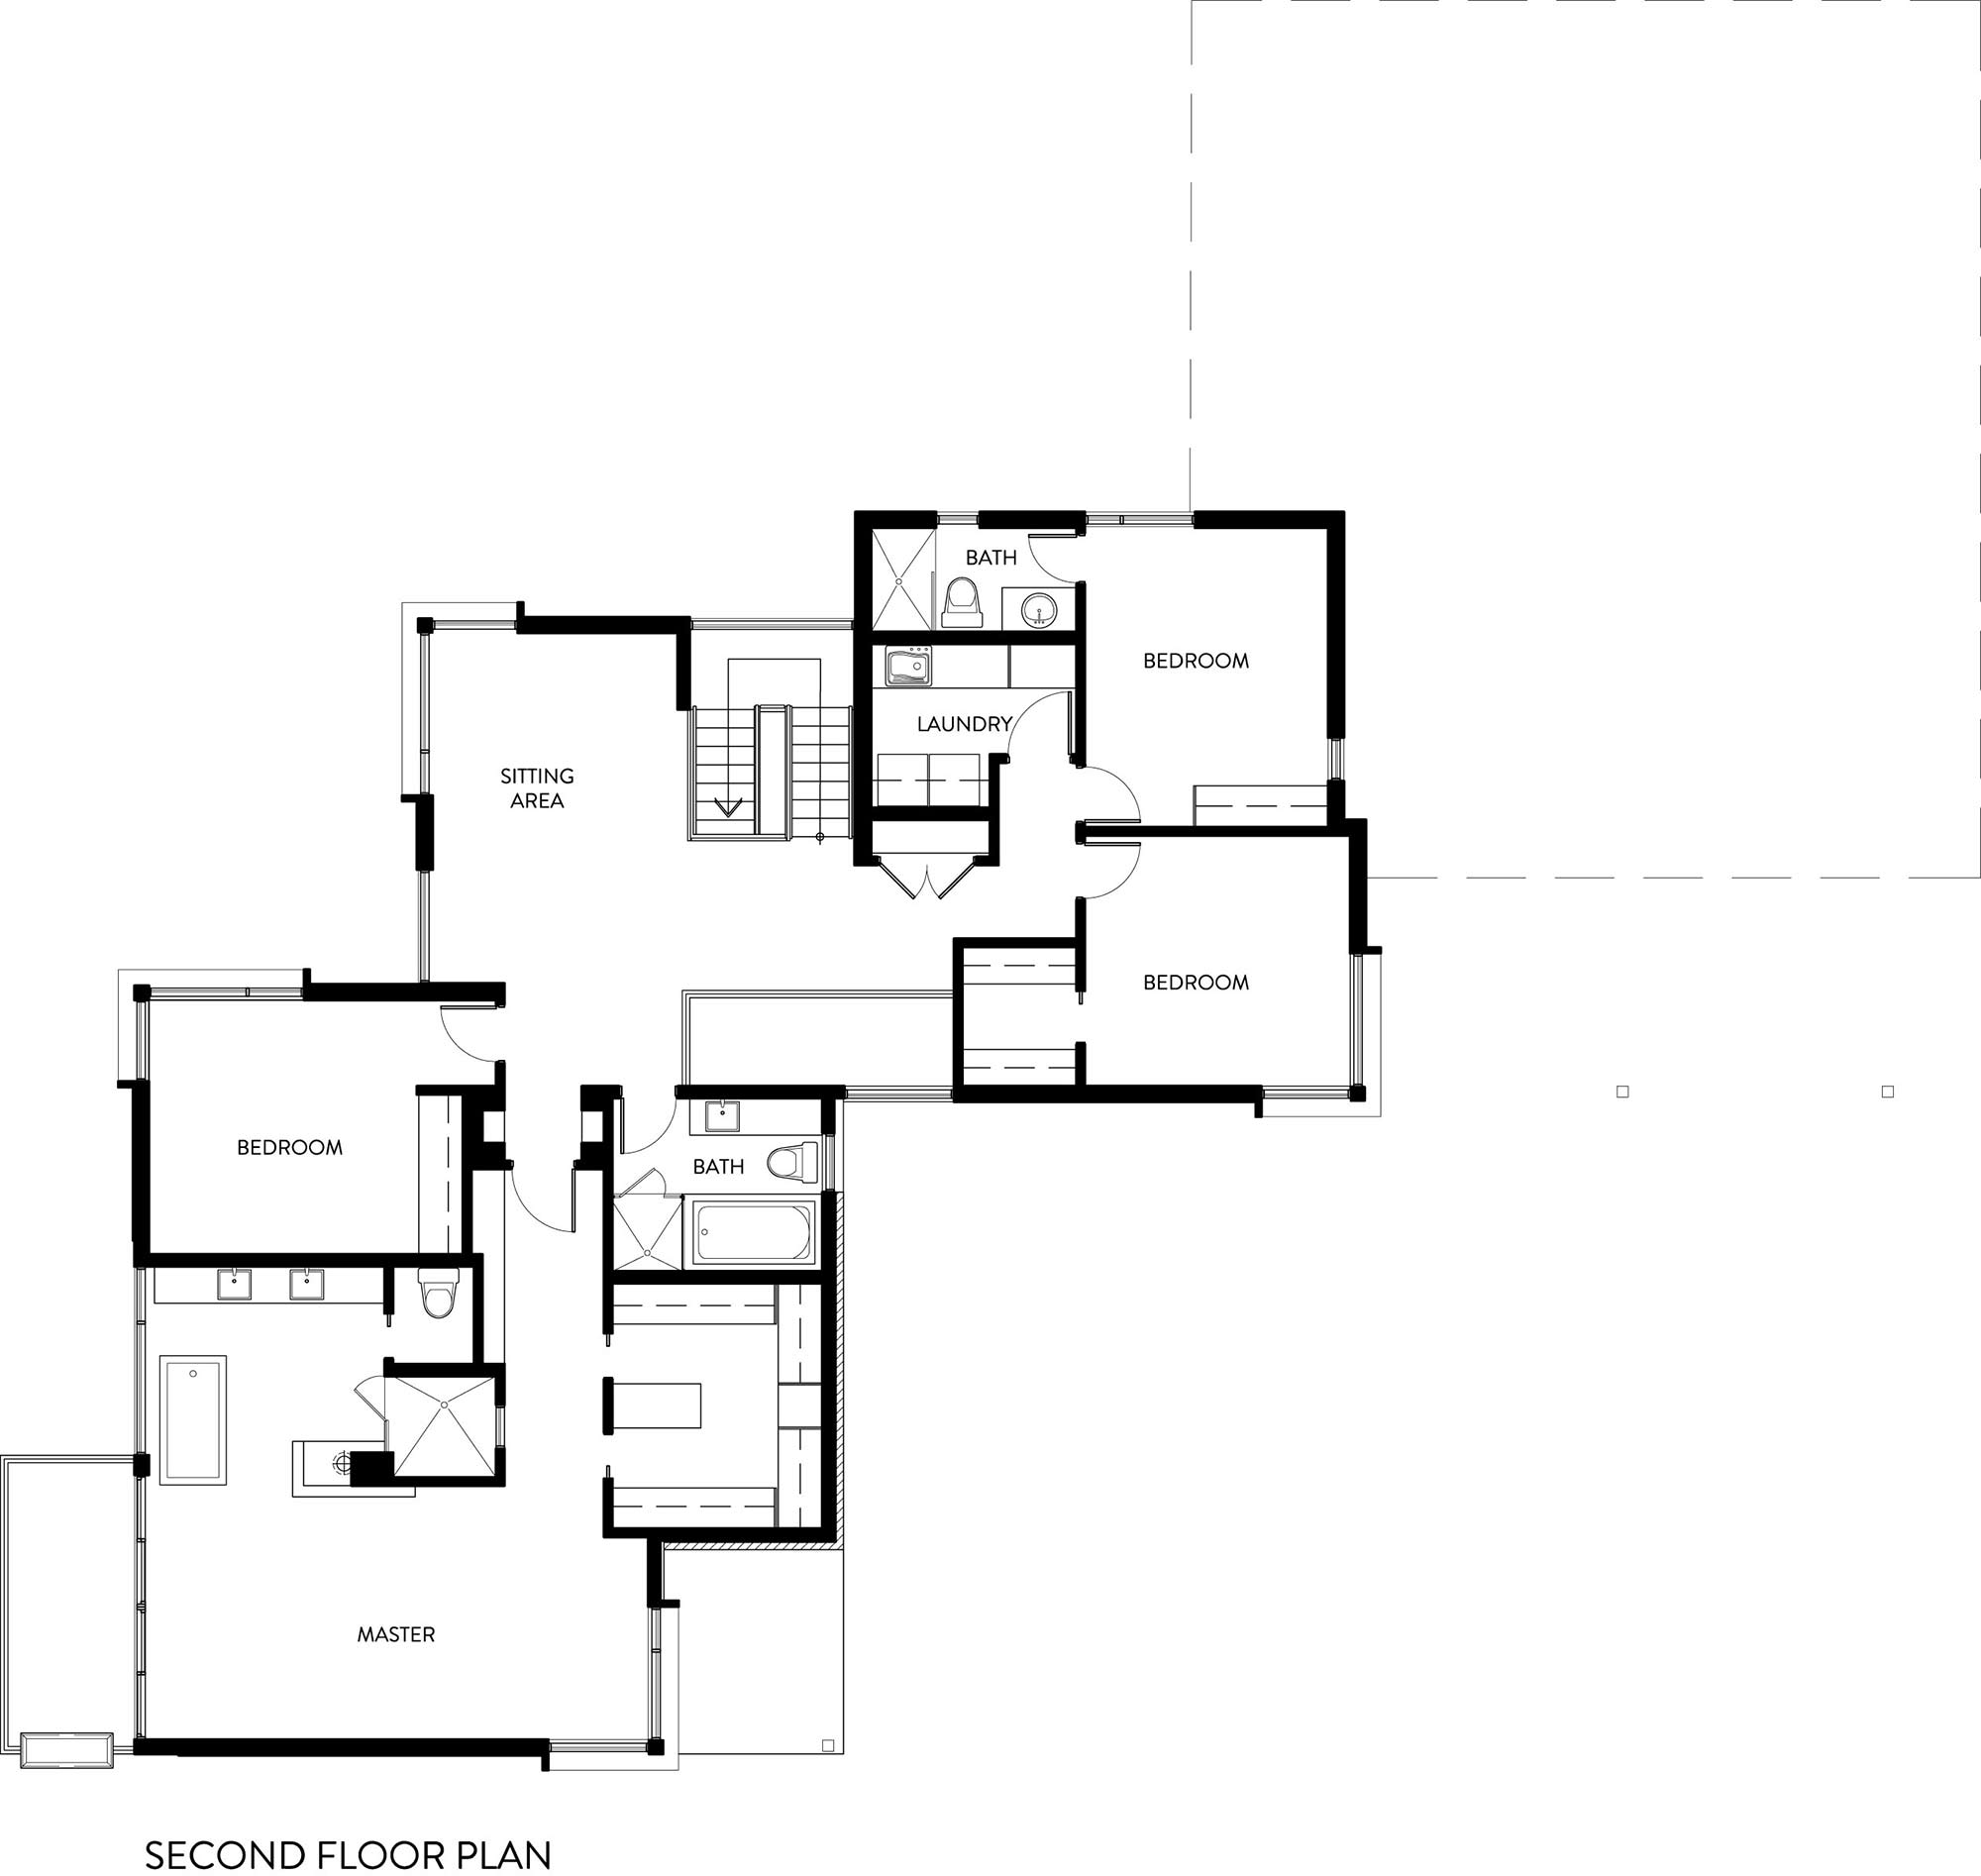 Second floor plan riverside home in ottawa canada Canadian house designs and floor plans